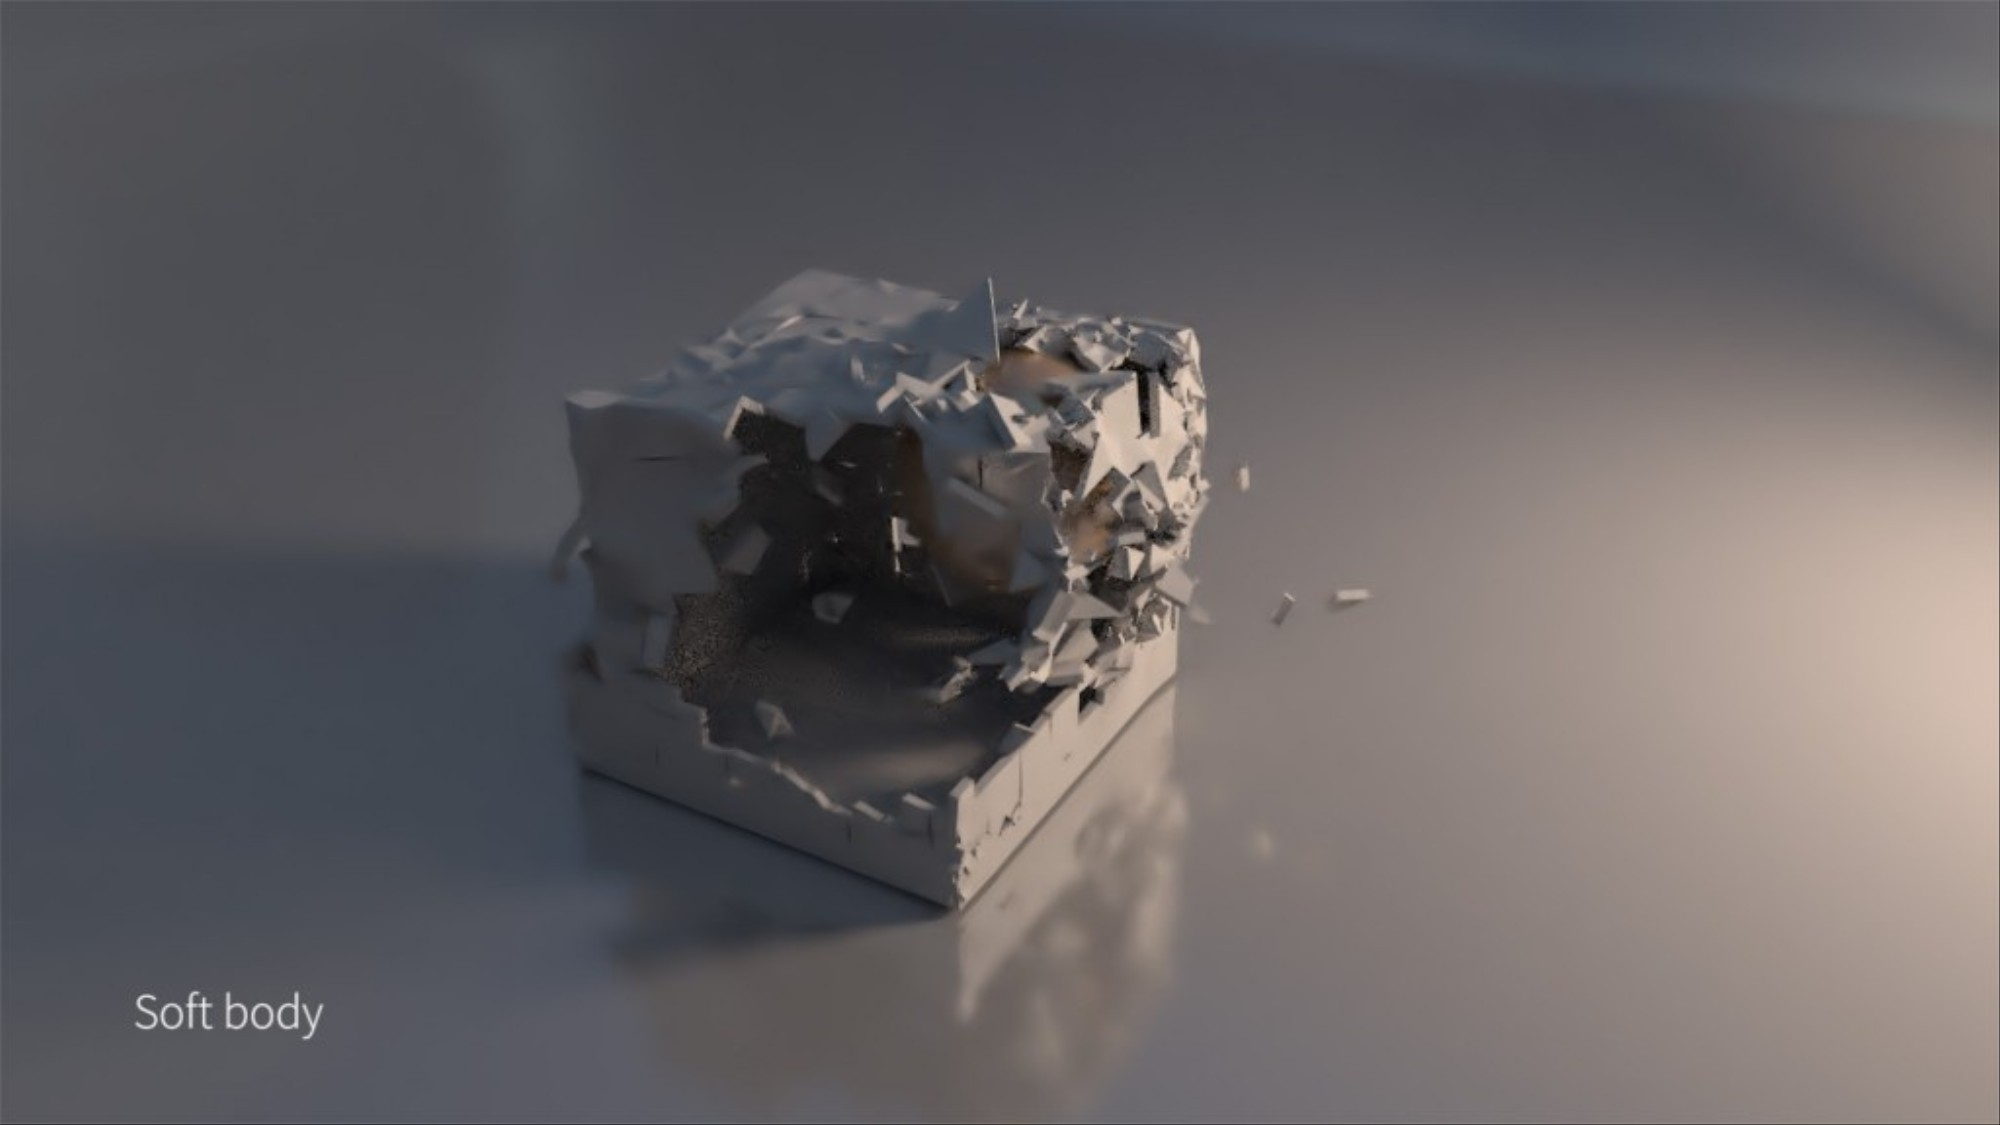 Here's How To Create Digital Destruction In Blender - VICE